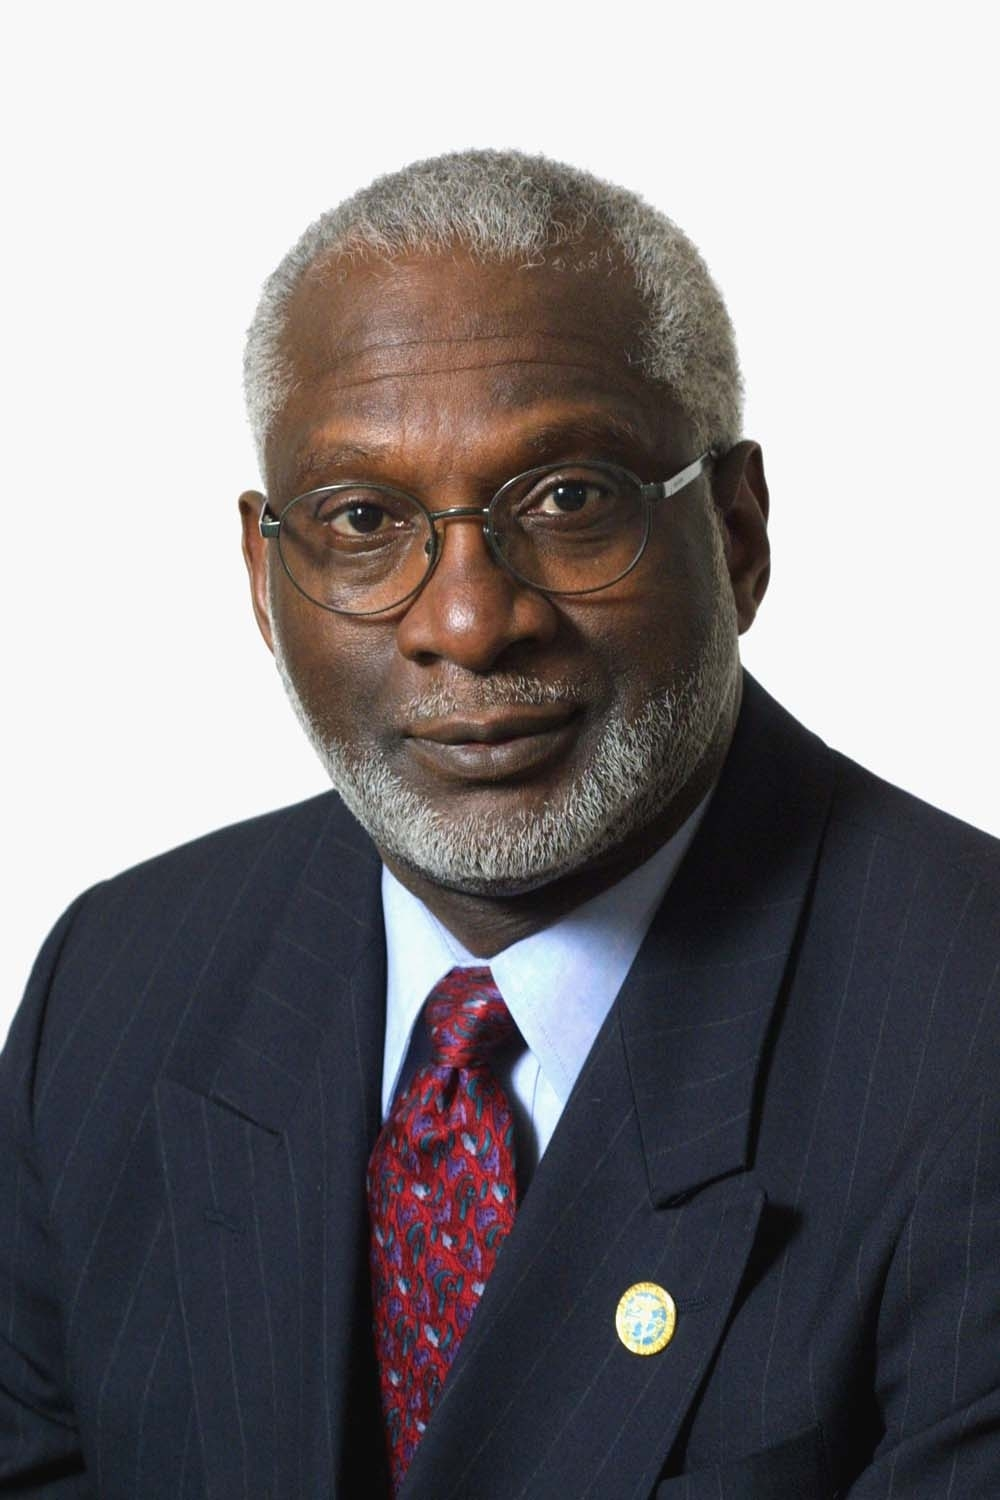 Dr. David Satcher, 16th U.S. surgeon general and former assistant secretary for health